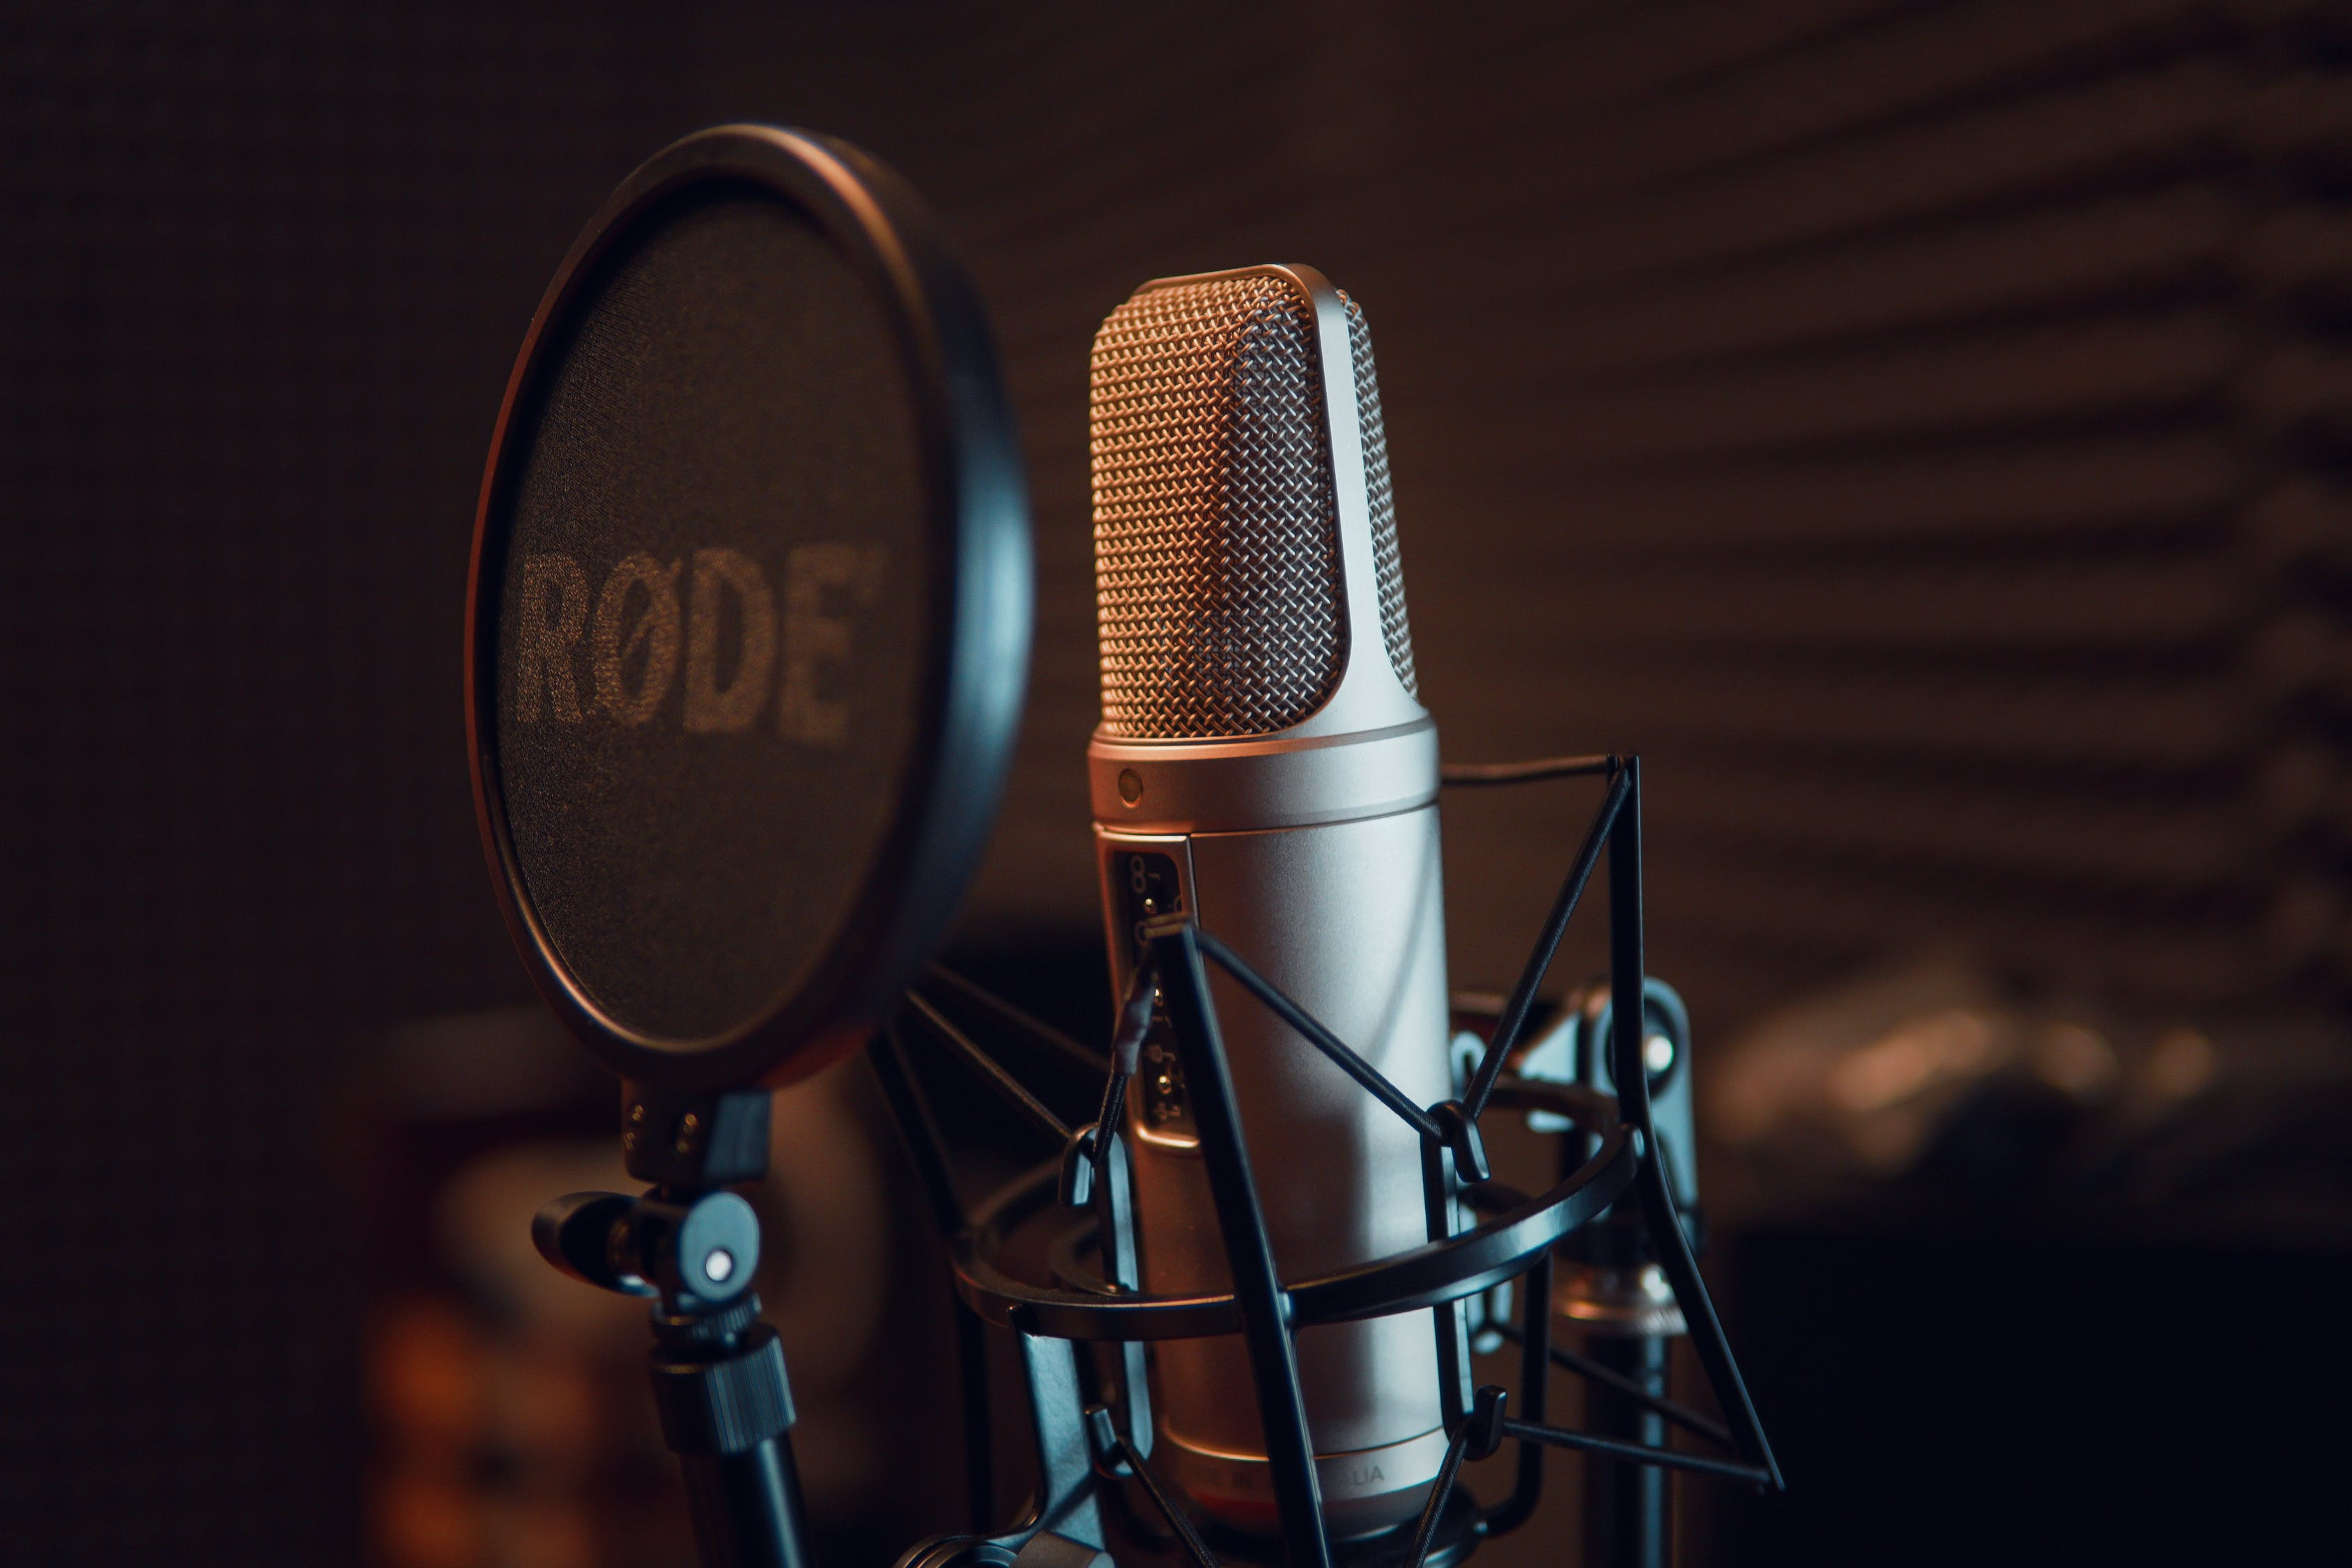 I will produce your English voice over 100 words